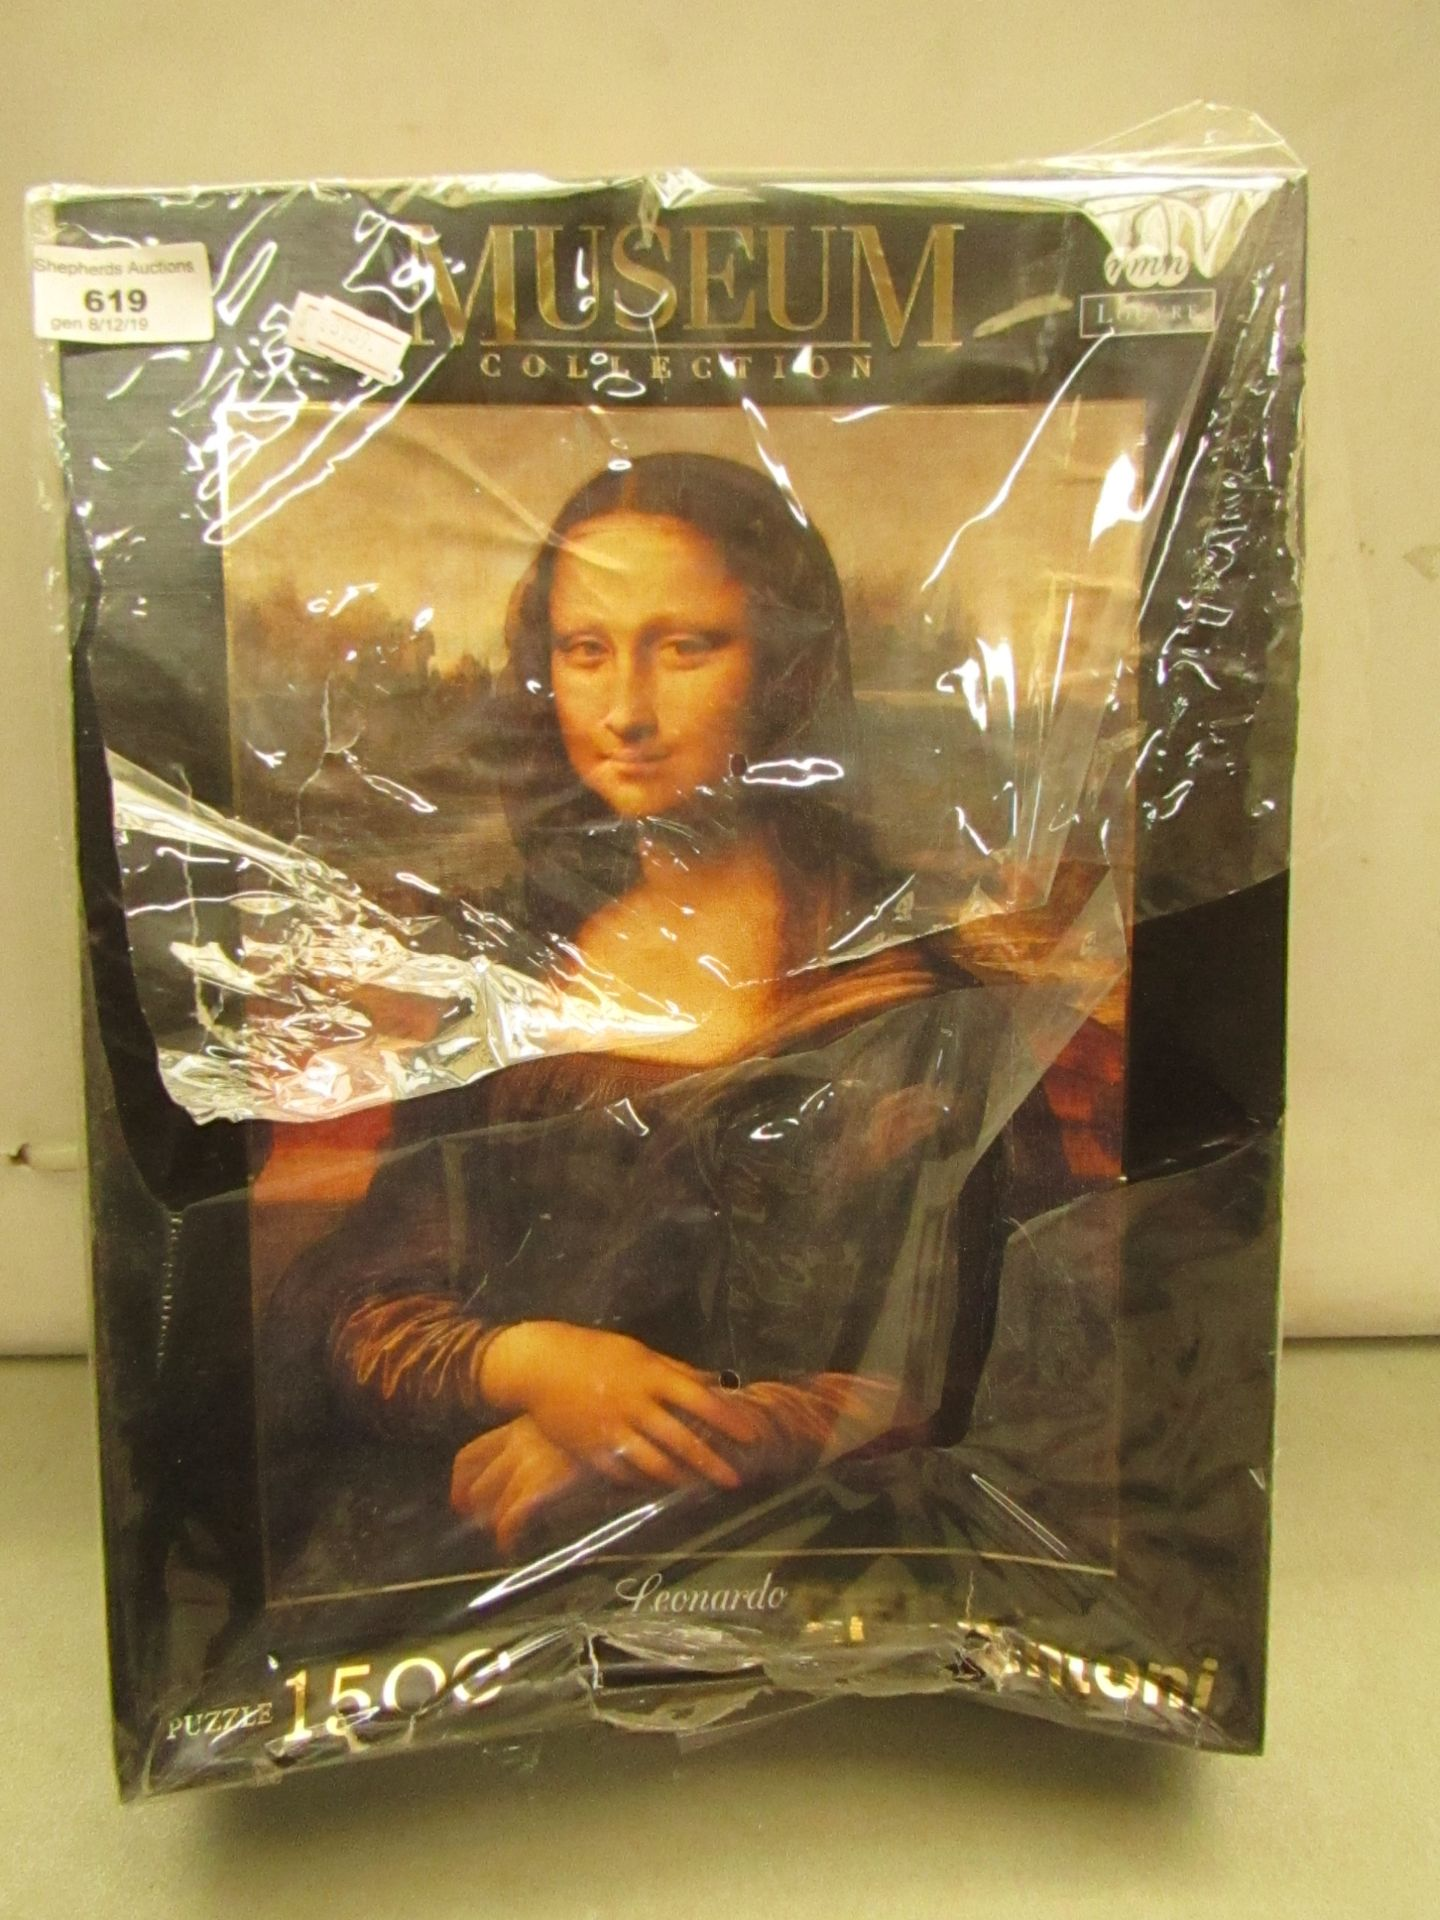 Lot 619 - Mona Lisa Jigsaw 1500 pieces unchecked